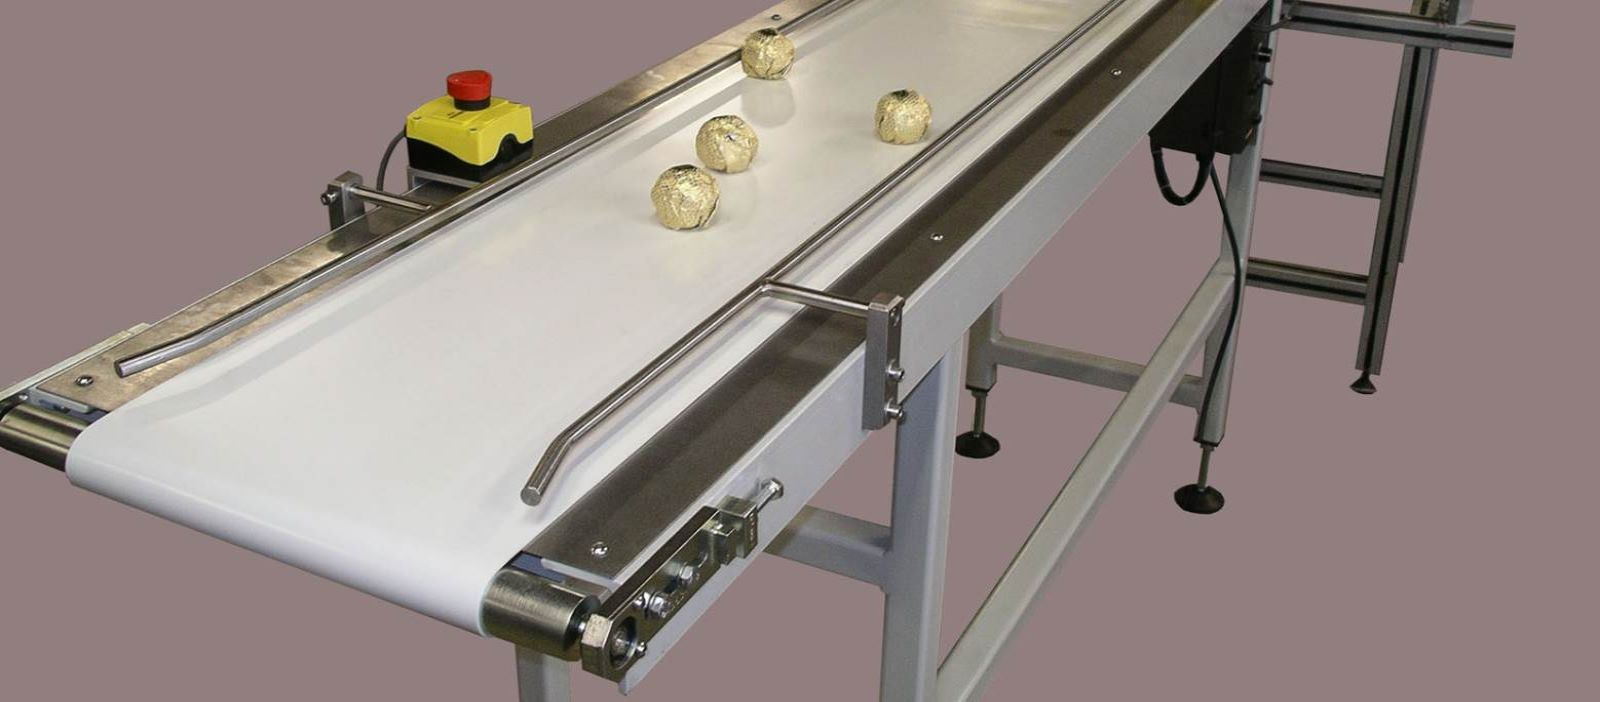 For over 30 years, Manufacturers of Erectors, Cartoners, Closers, Vacuum Conveyors and Suppliers of Gluers and Feeders